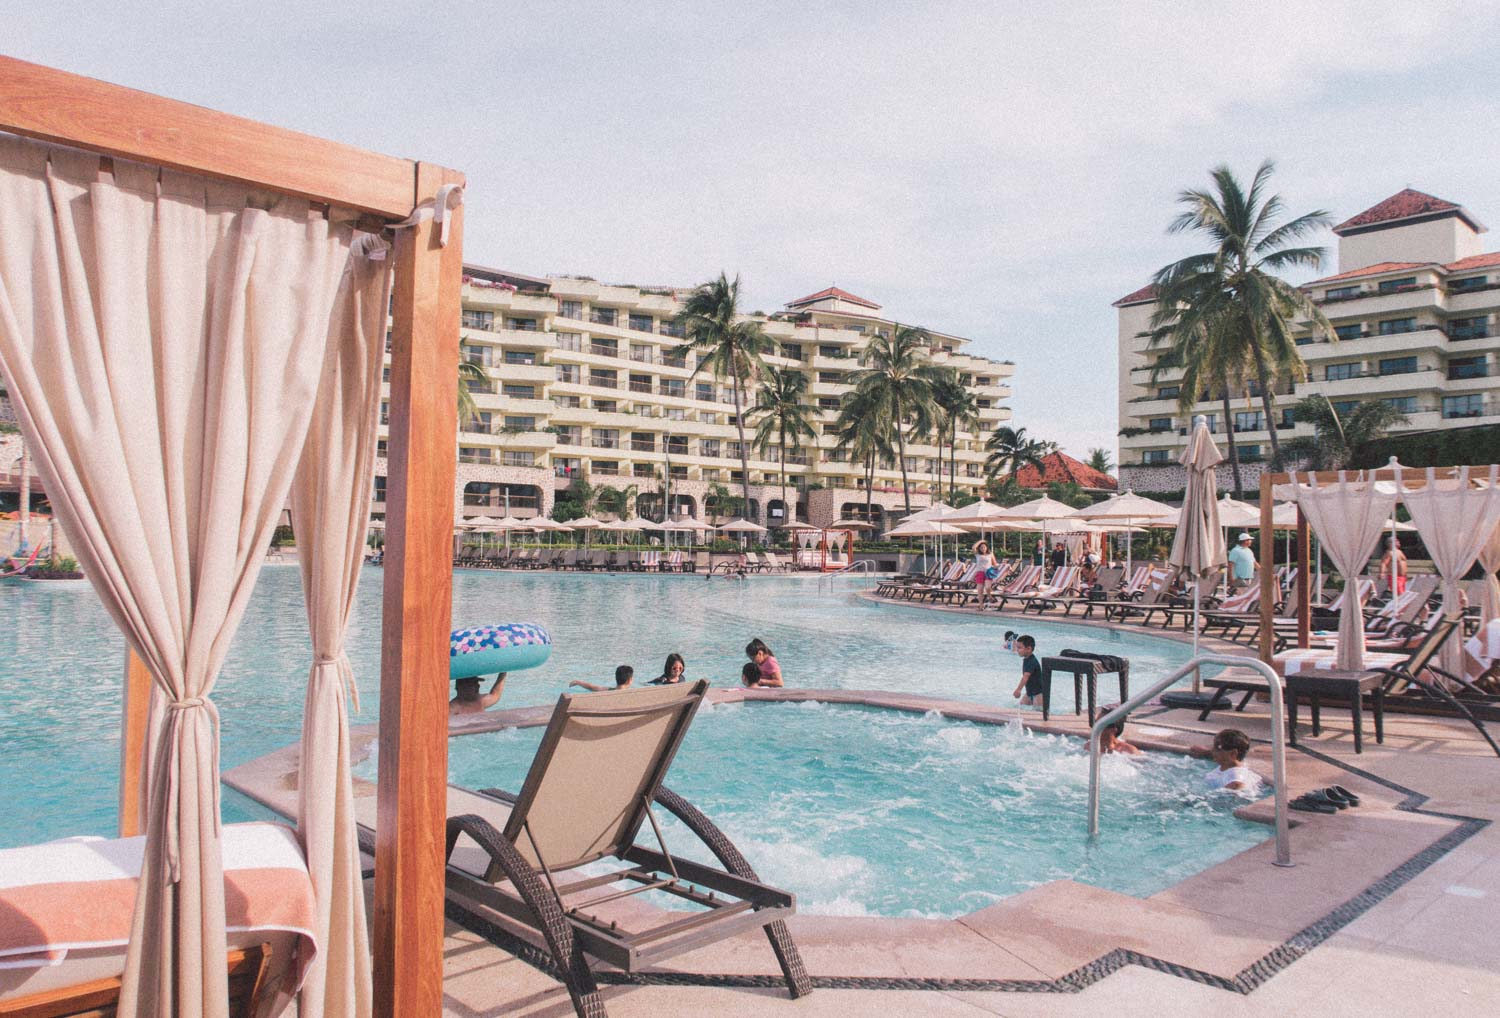 Elizabeth Hugen of Lizzie in Lace shares the Marriott Puerto Vallarta pool area!